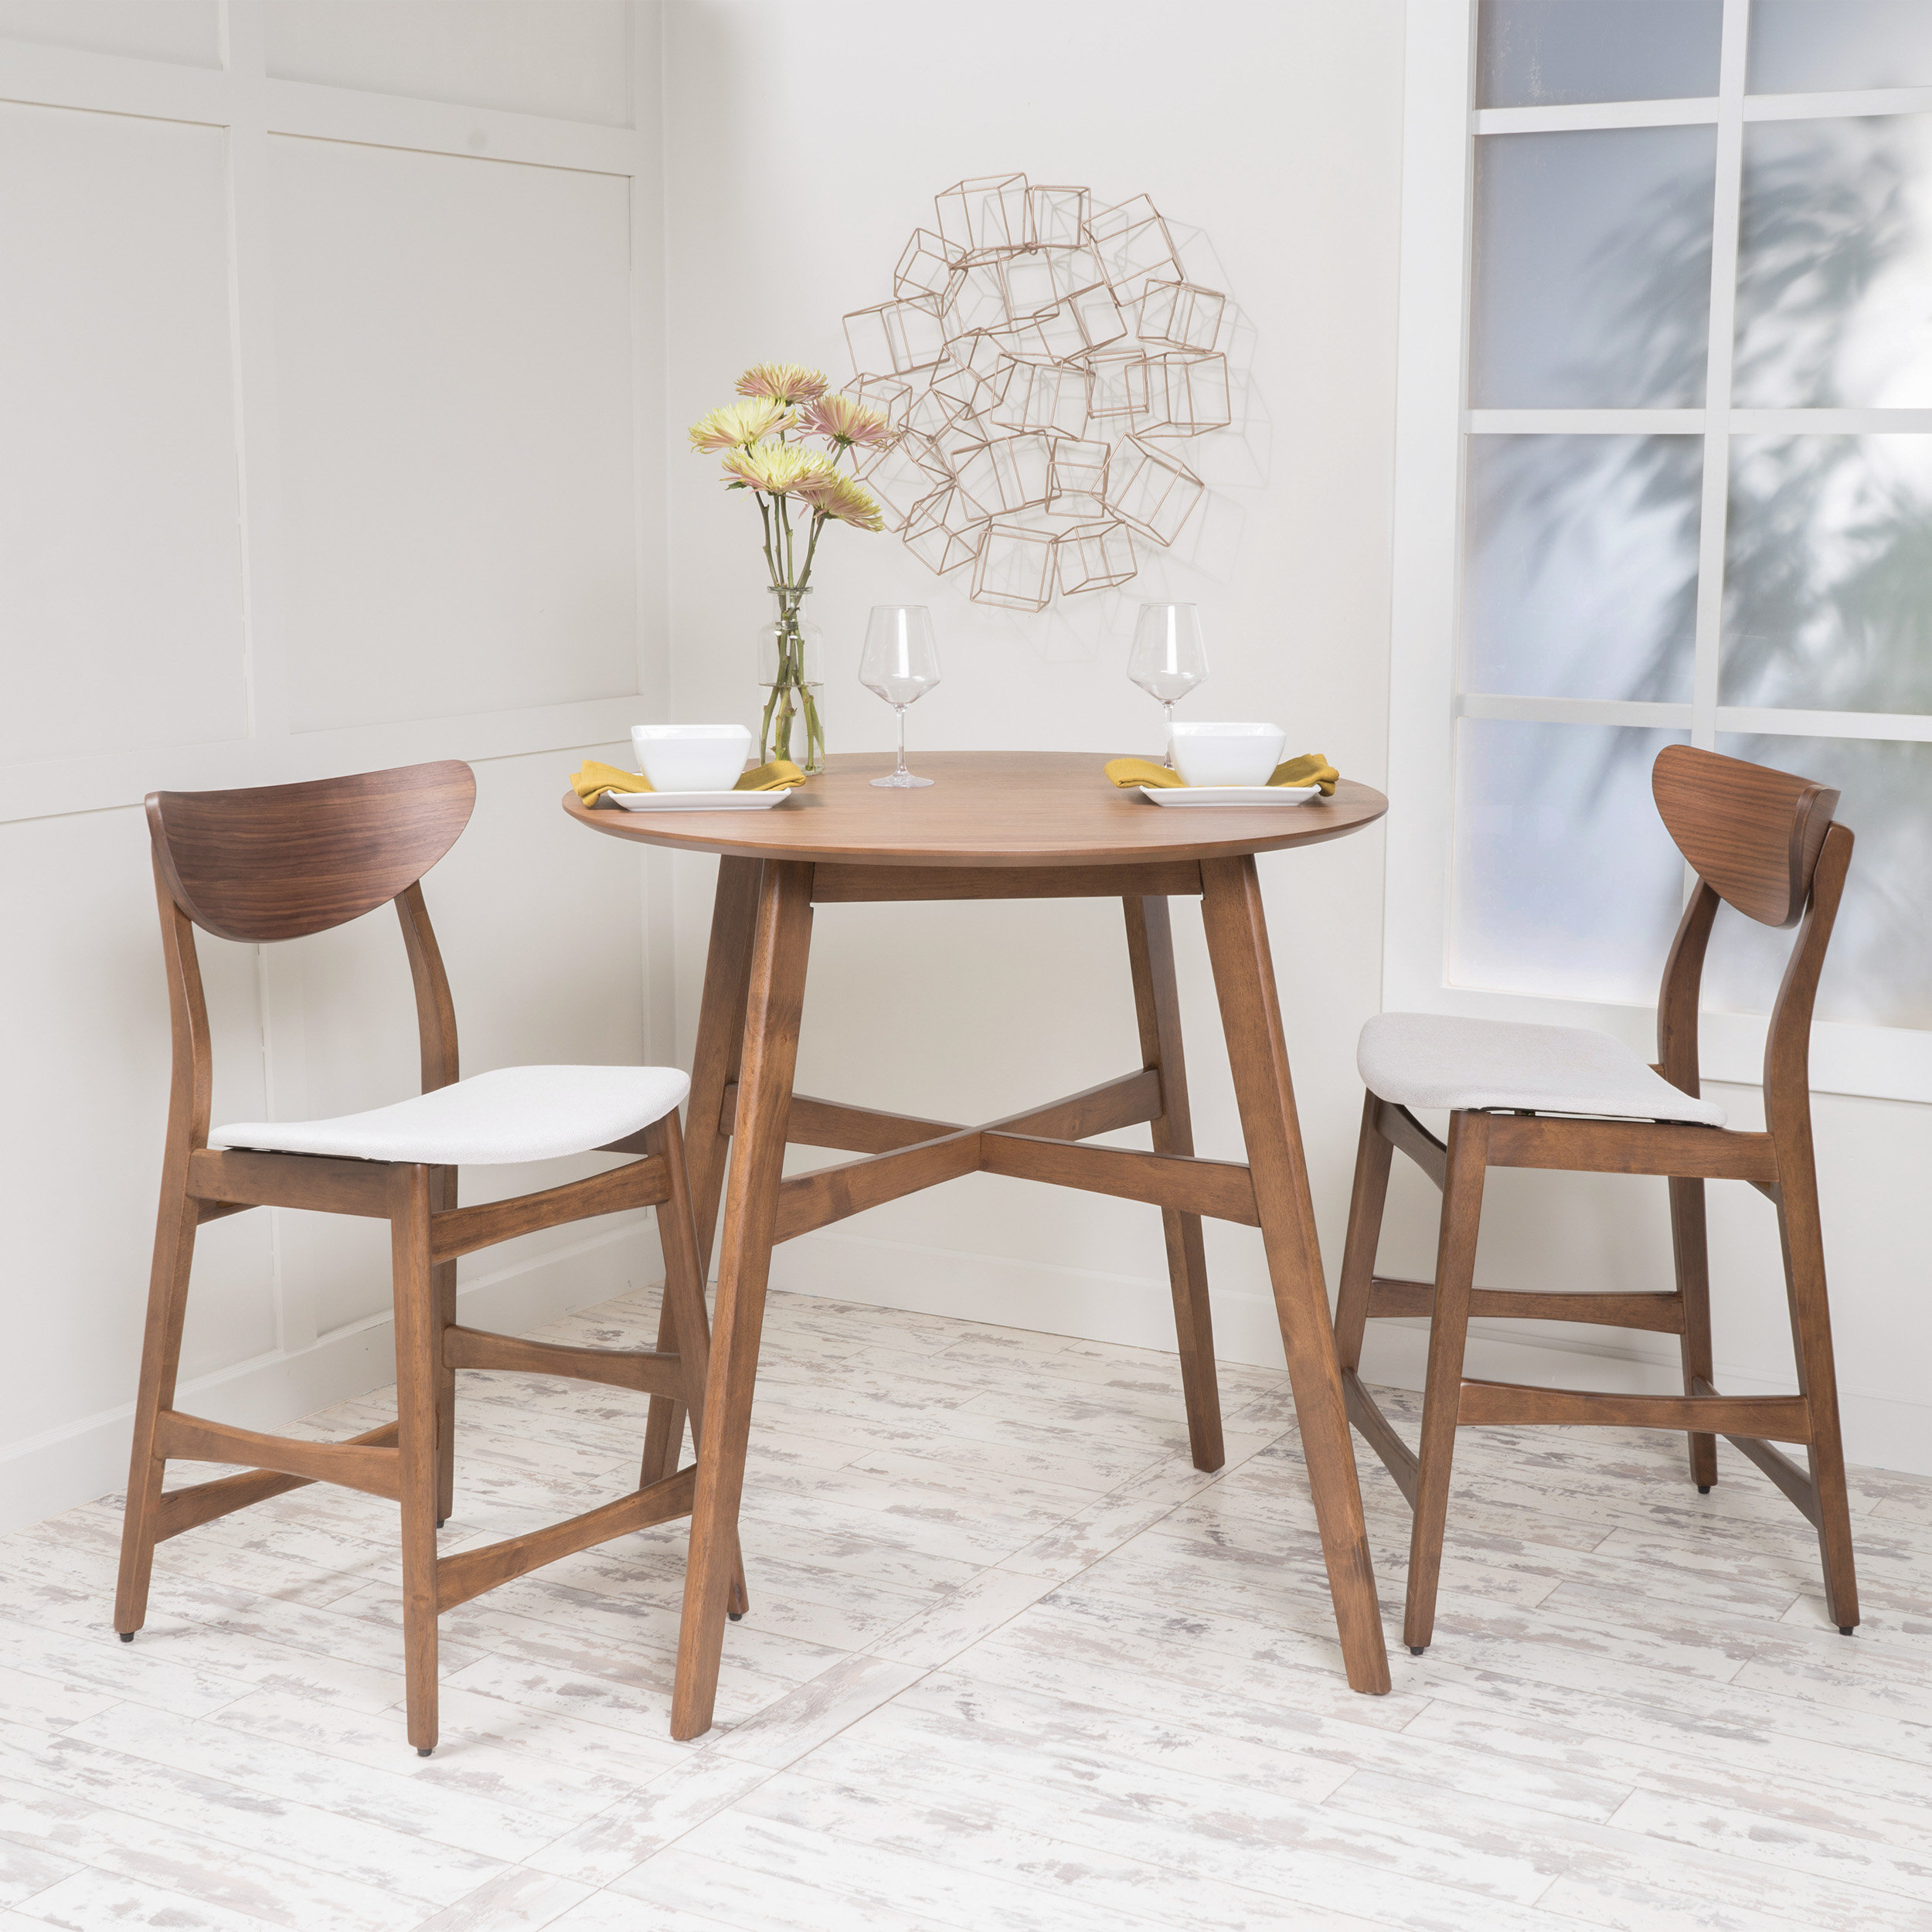 Santa Cruz 3 Piece Counter Height Dining Set Pertaining To Current Moorehead 3 Piece Counter Height Dining Sets (View 2 of 20)